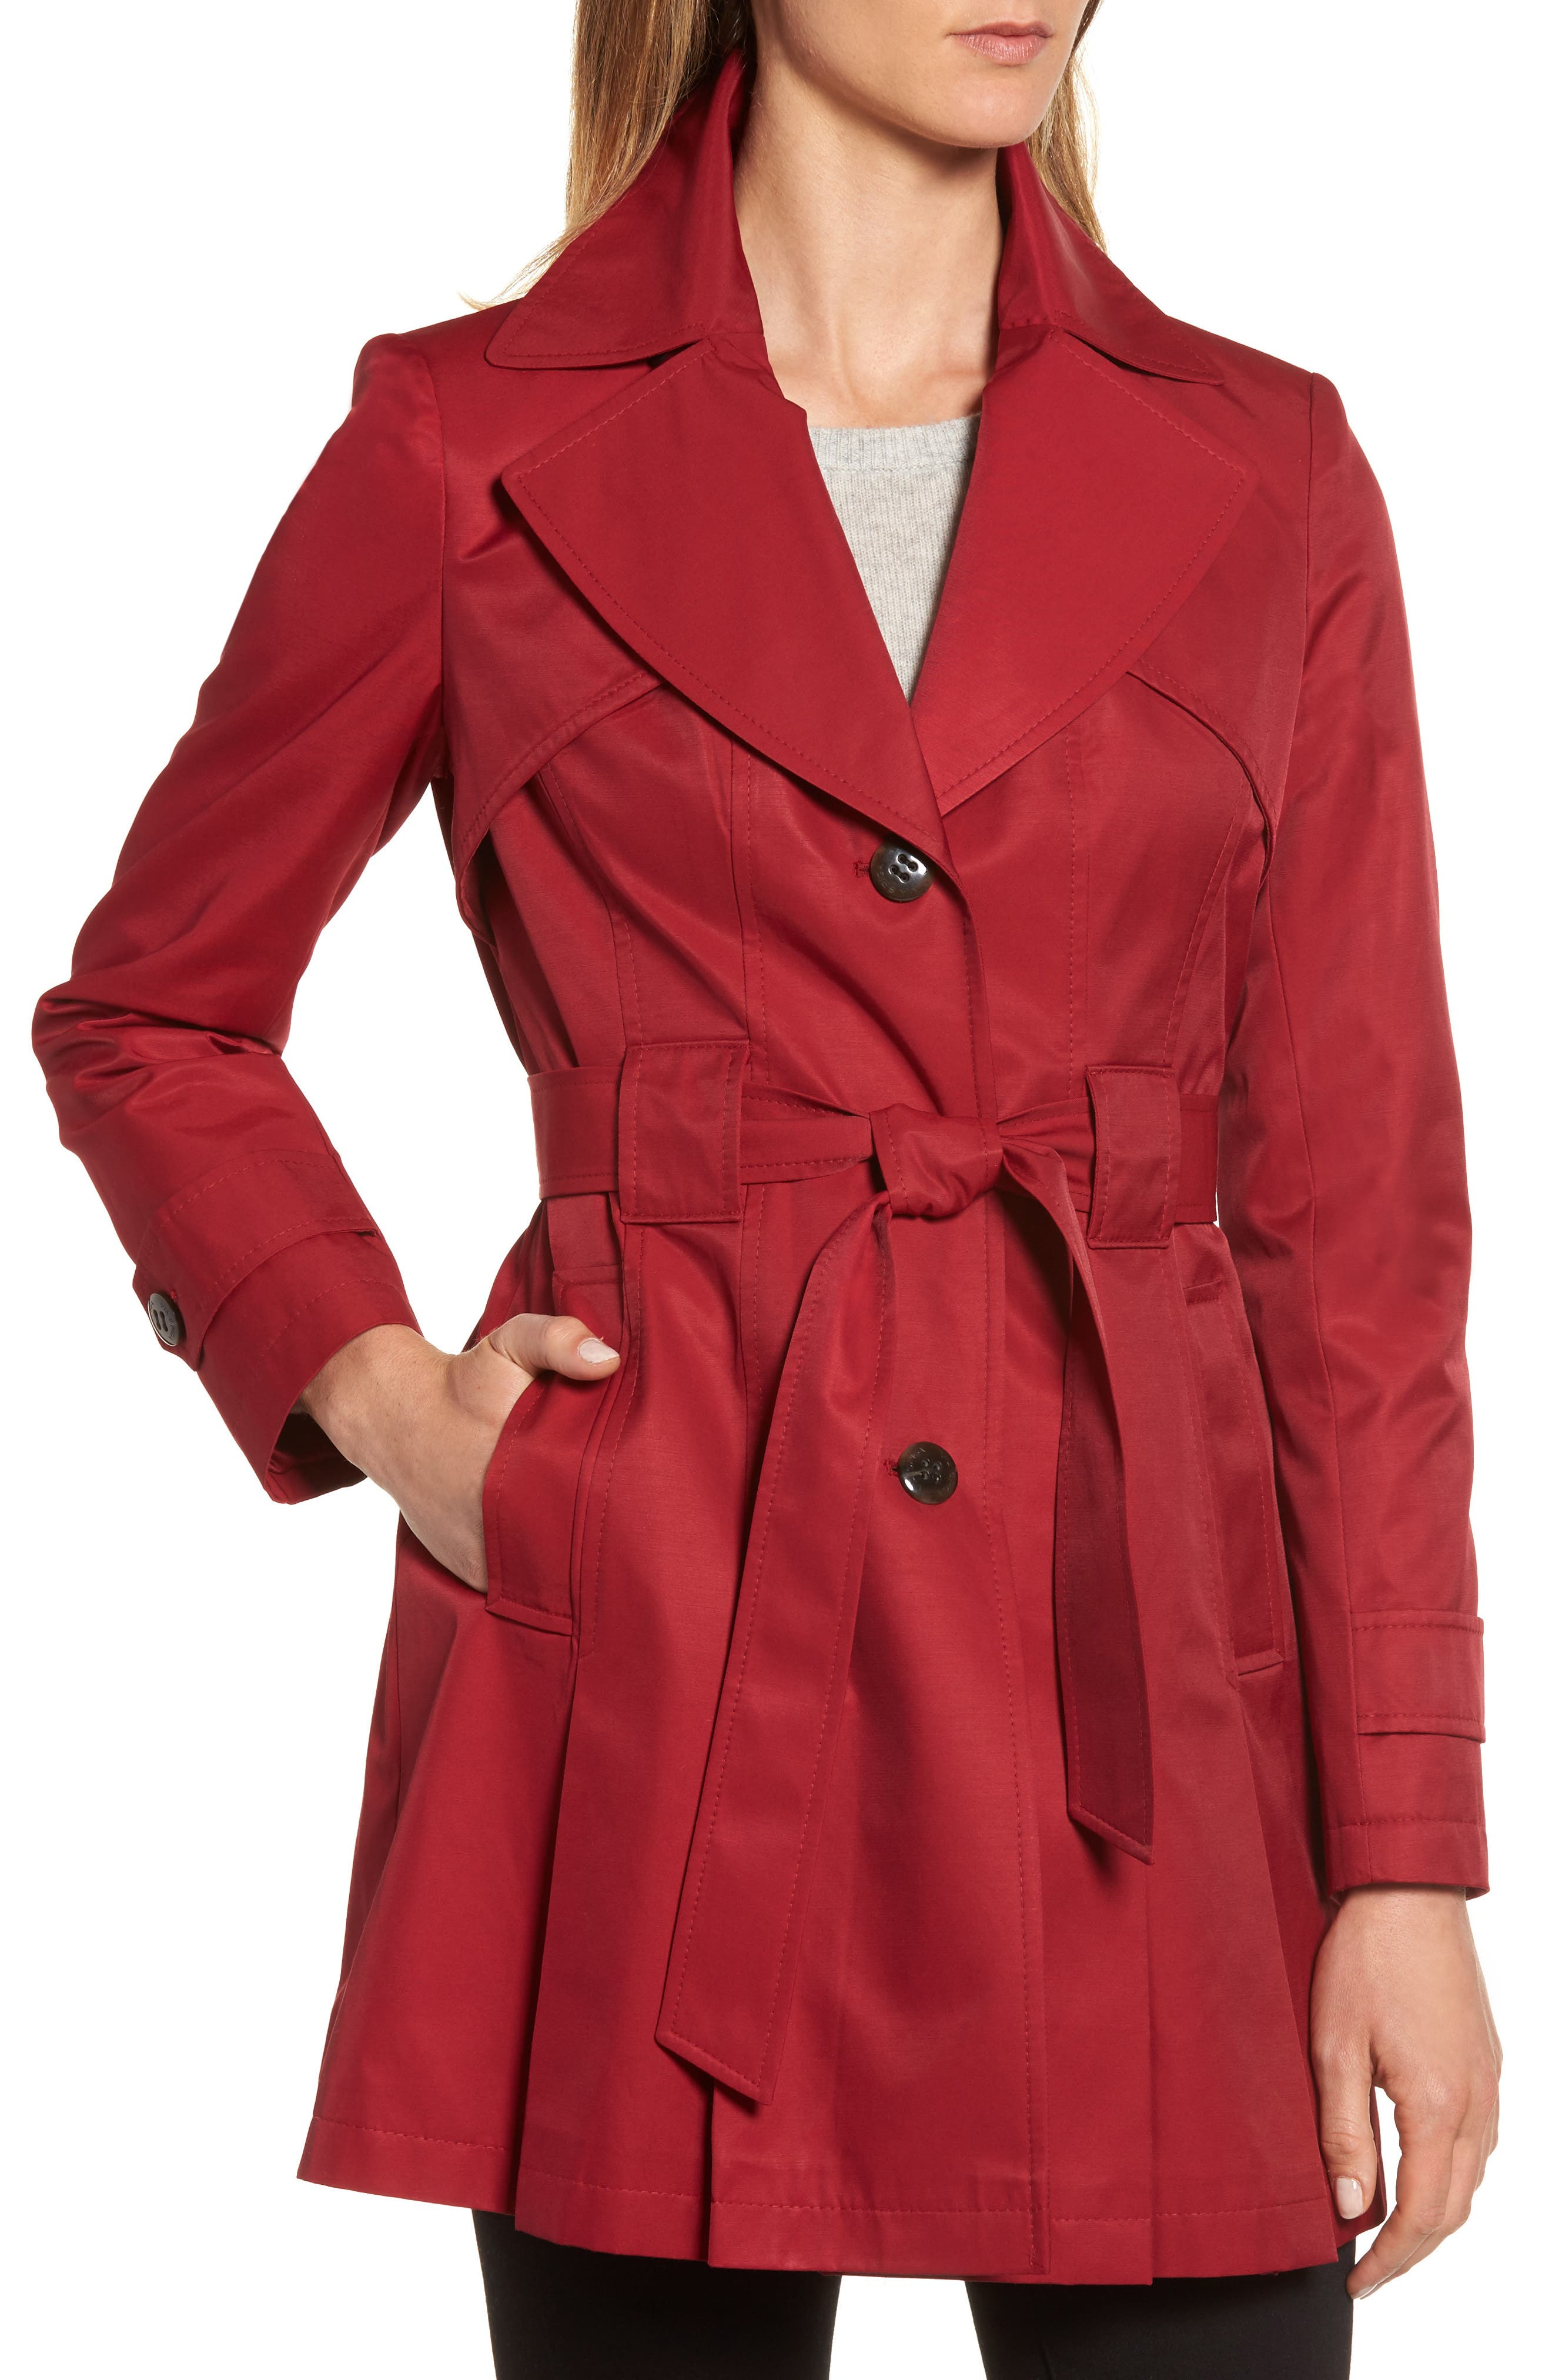 'Scarpa' Hooded Single Breasted Trench Coat,                             Alternate thumbnail 26, color,